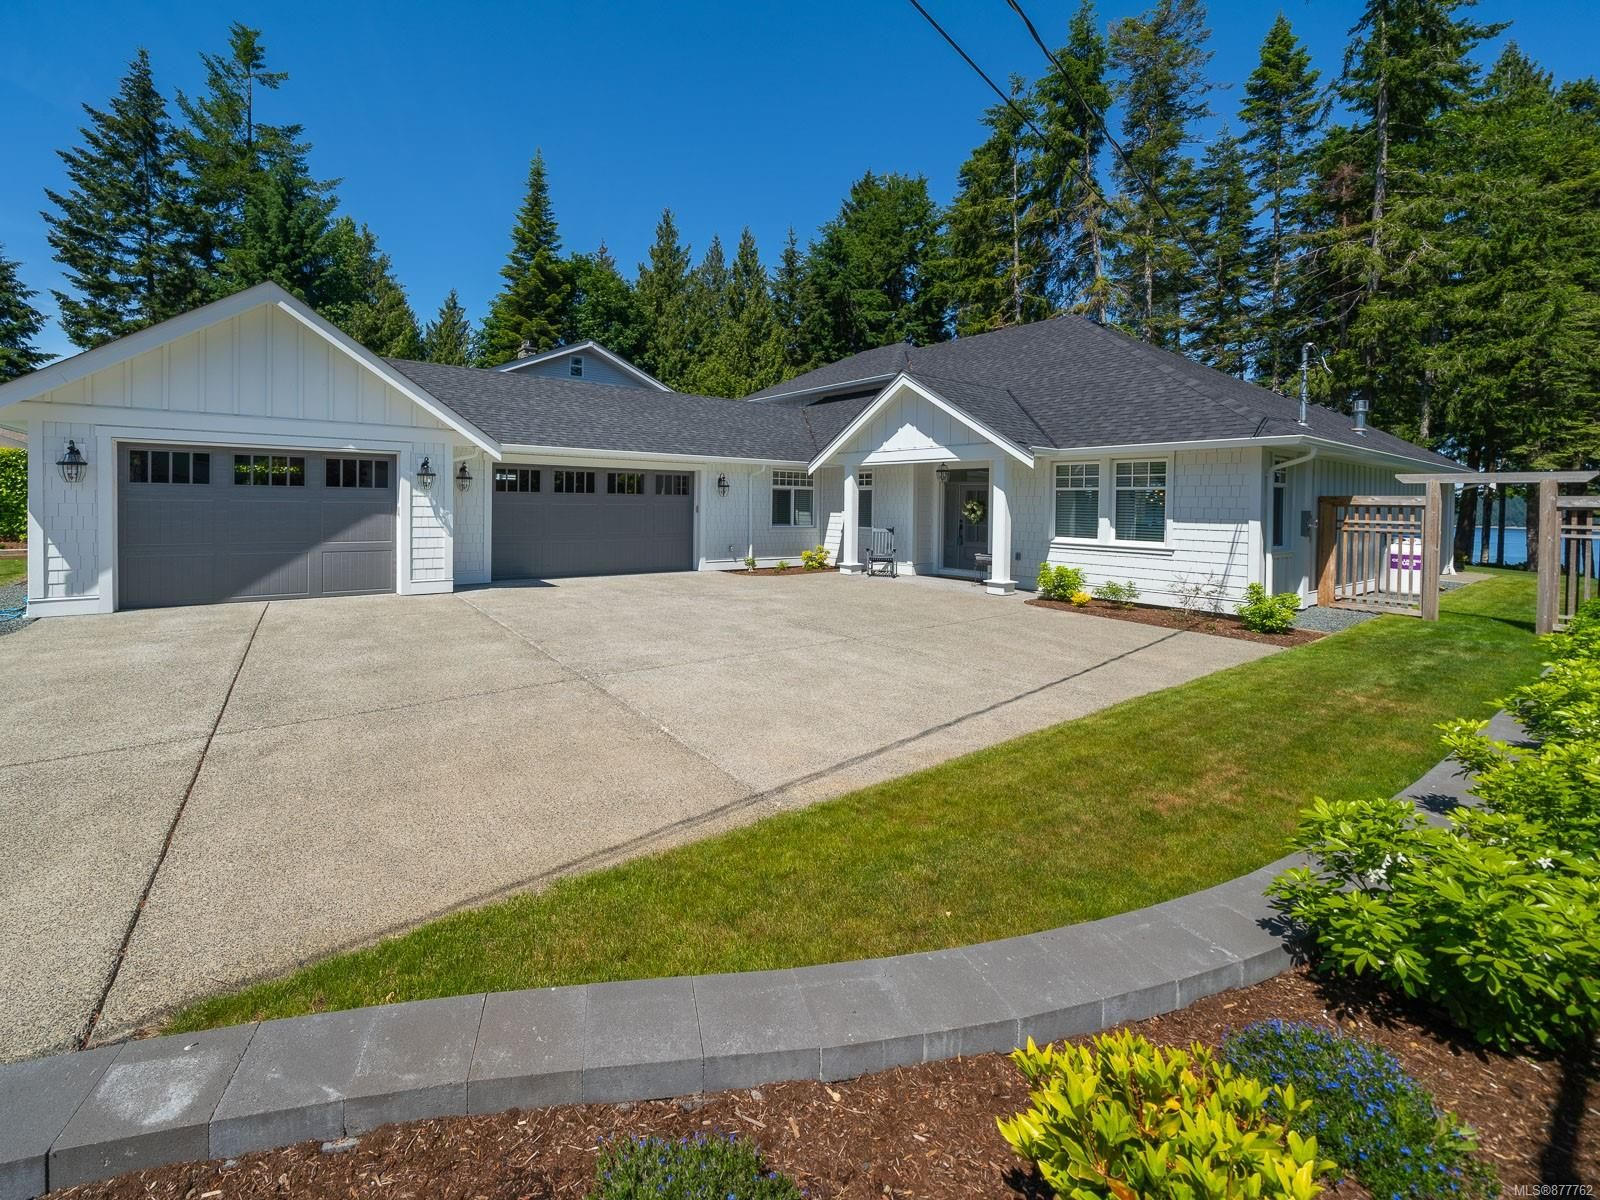 Main Photo: 4827 Ocean Trail in : PQ Bowser/Deep Bay House for sale (Parksville/Qualicum)  : MLS®# 877762